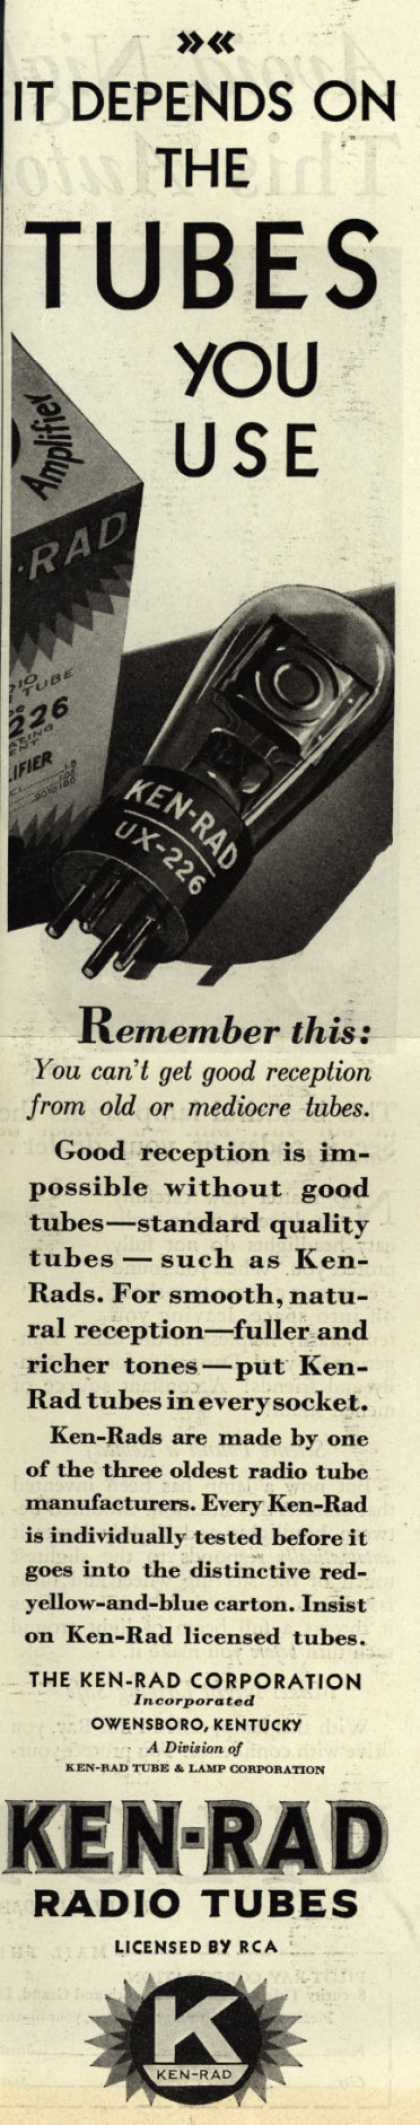 Ken-Rad Radio Tube's Radio Tubes – It Depends on the TUBES You Use (1929)